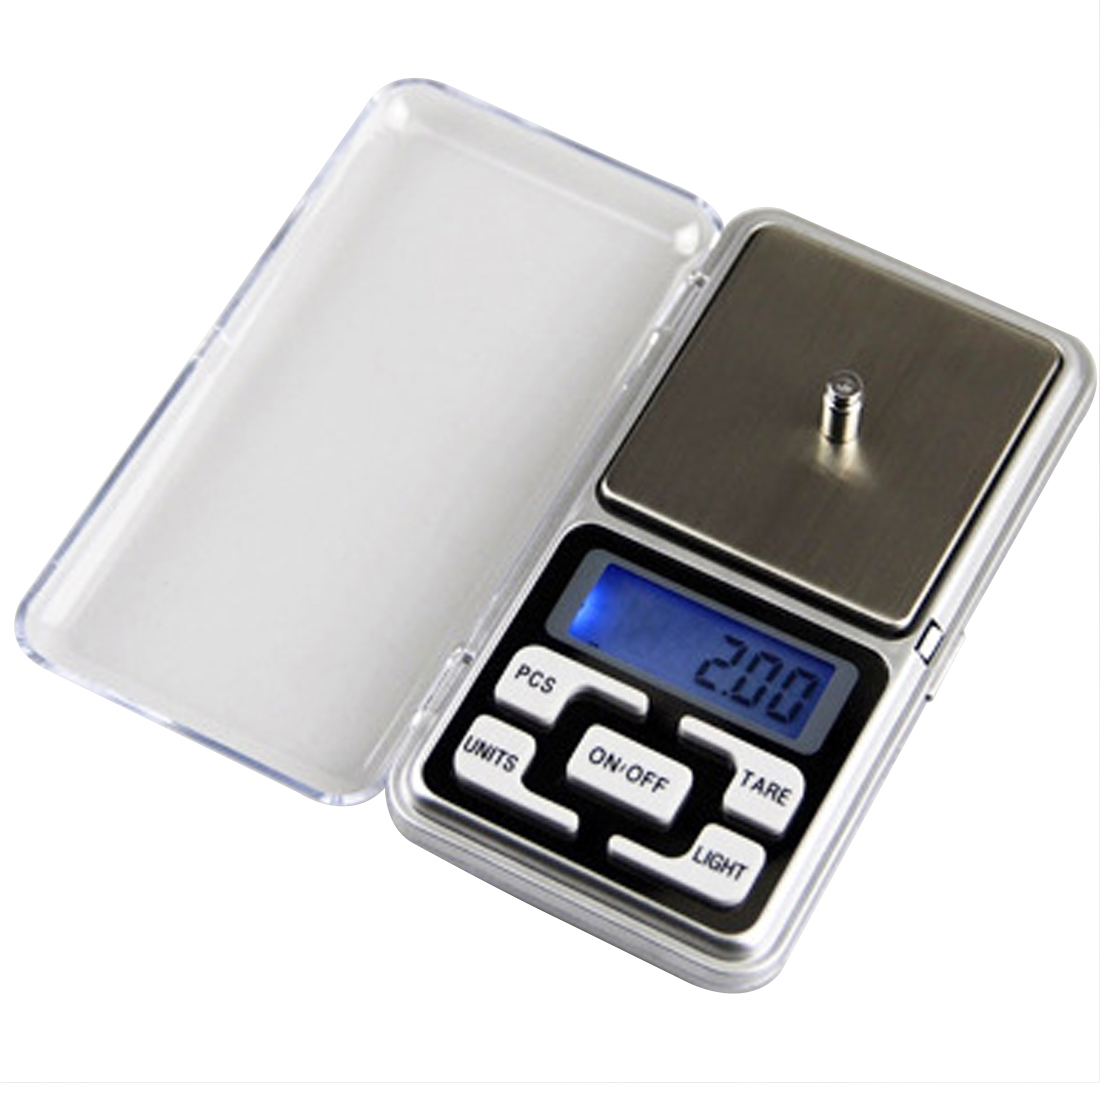 200g*<font><b>0.01g</b></font> Weighing <font><b>Scale</b></font> <font><b>Weight</b></font> <font><b>Scales</b></font> Balance g/oz/ct/tl Electronic LCD Display <font><b>scale</b></font> Mini Pocket <font><b>Digital</b></font> <font><b>Scale</b></font> the balance image